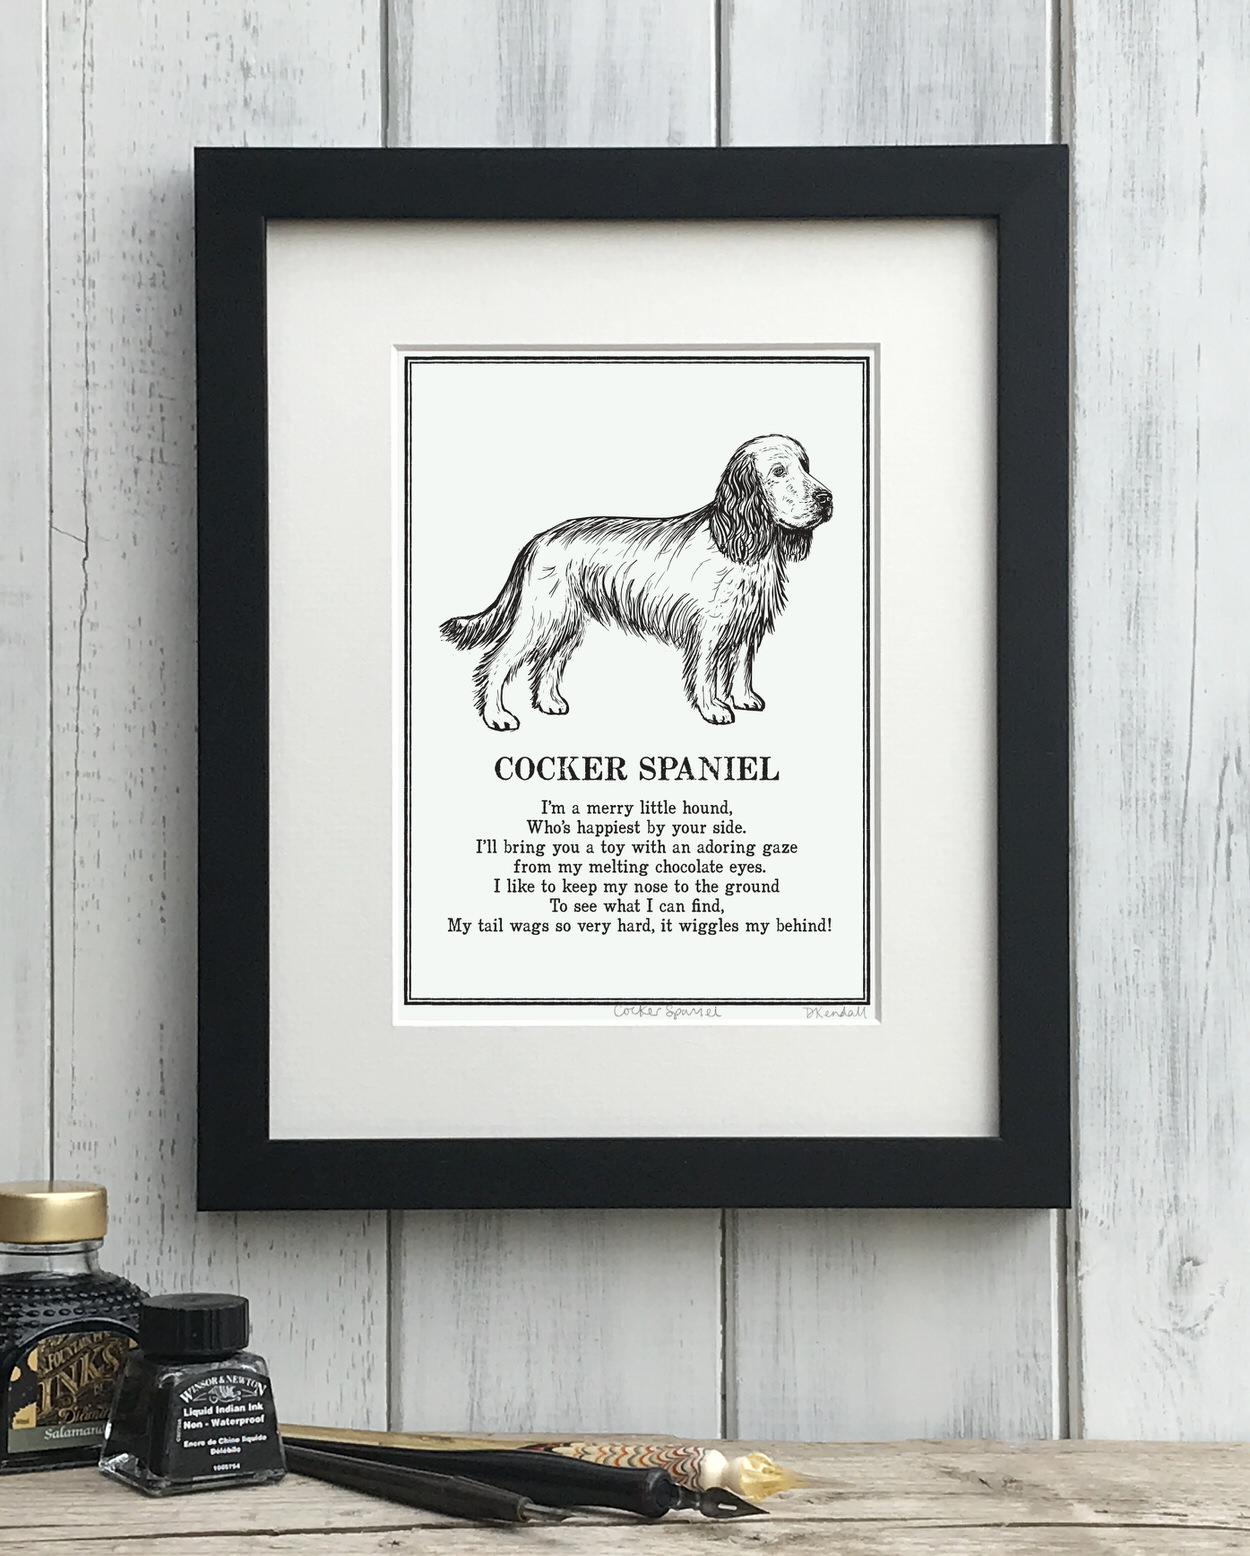 Cocker Spaniel print illustrated poem by The Enlightened Hound